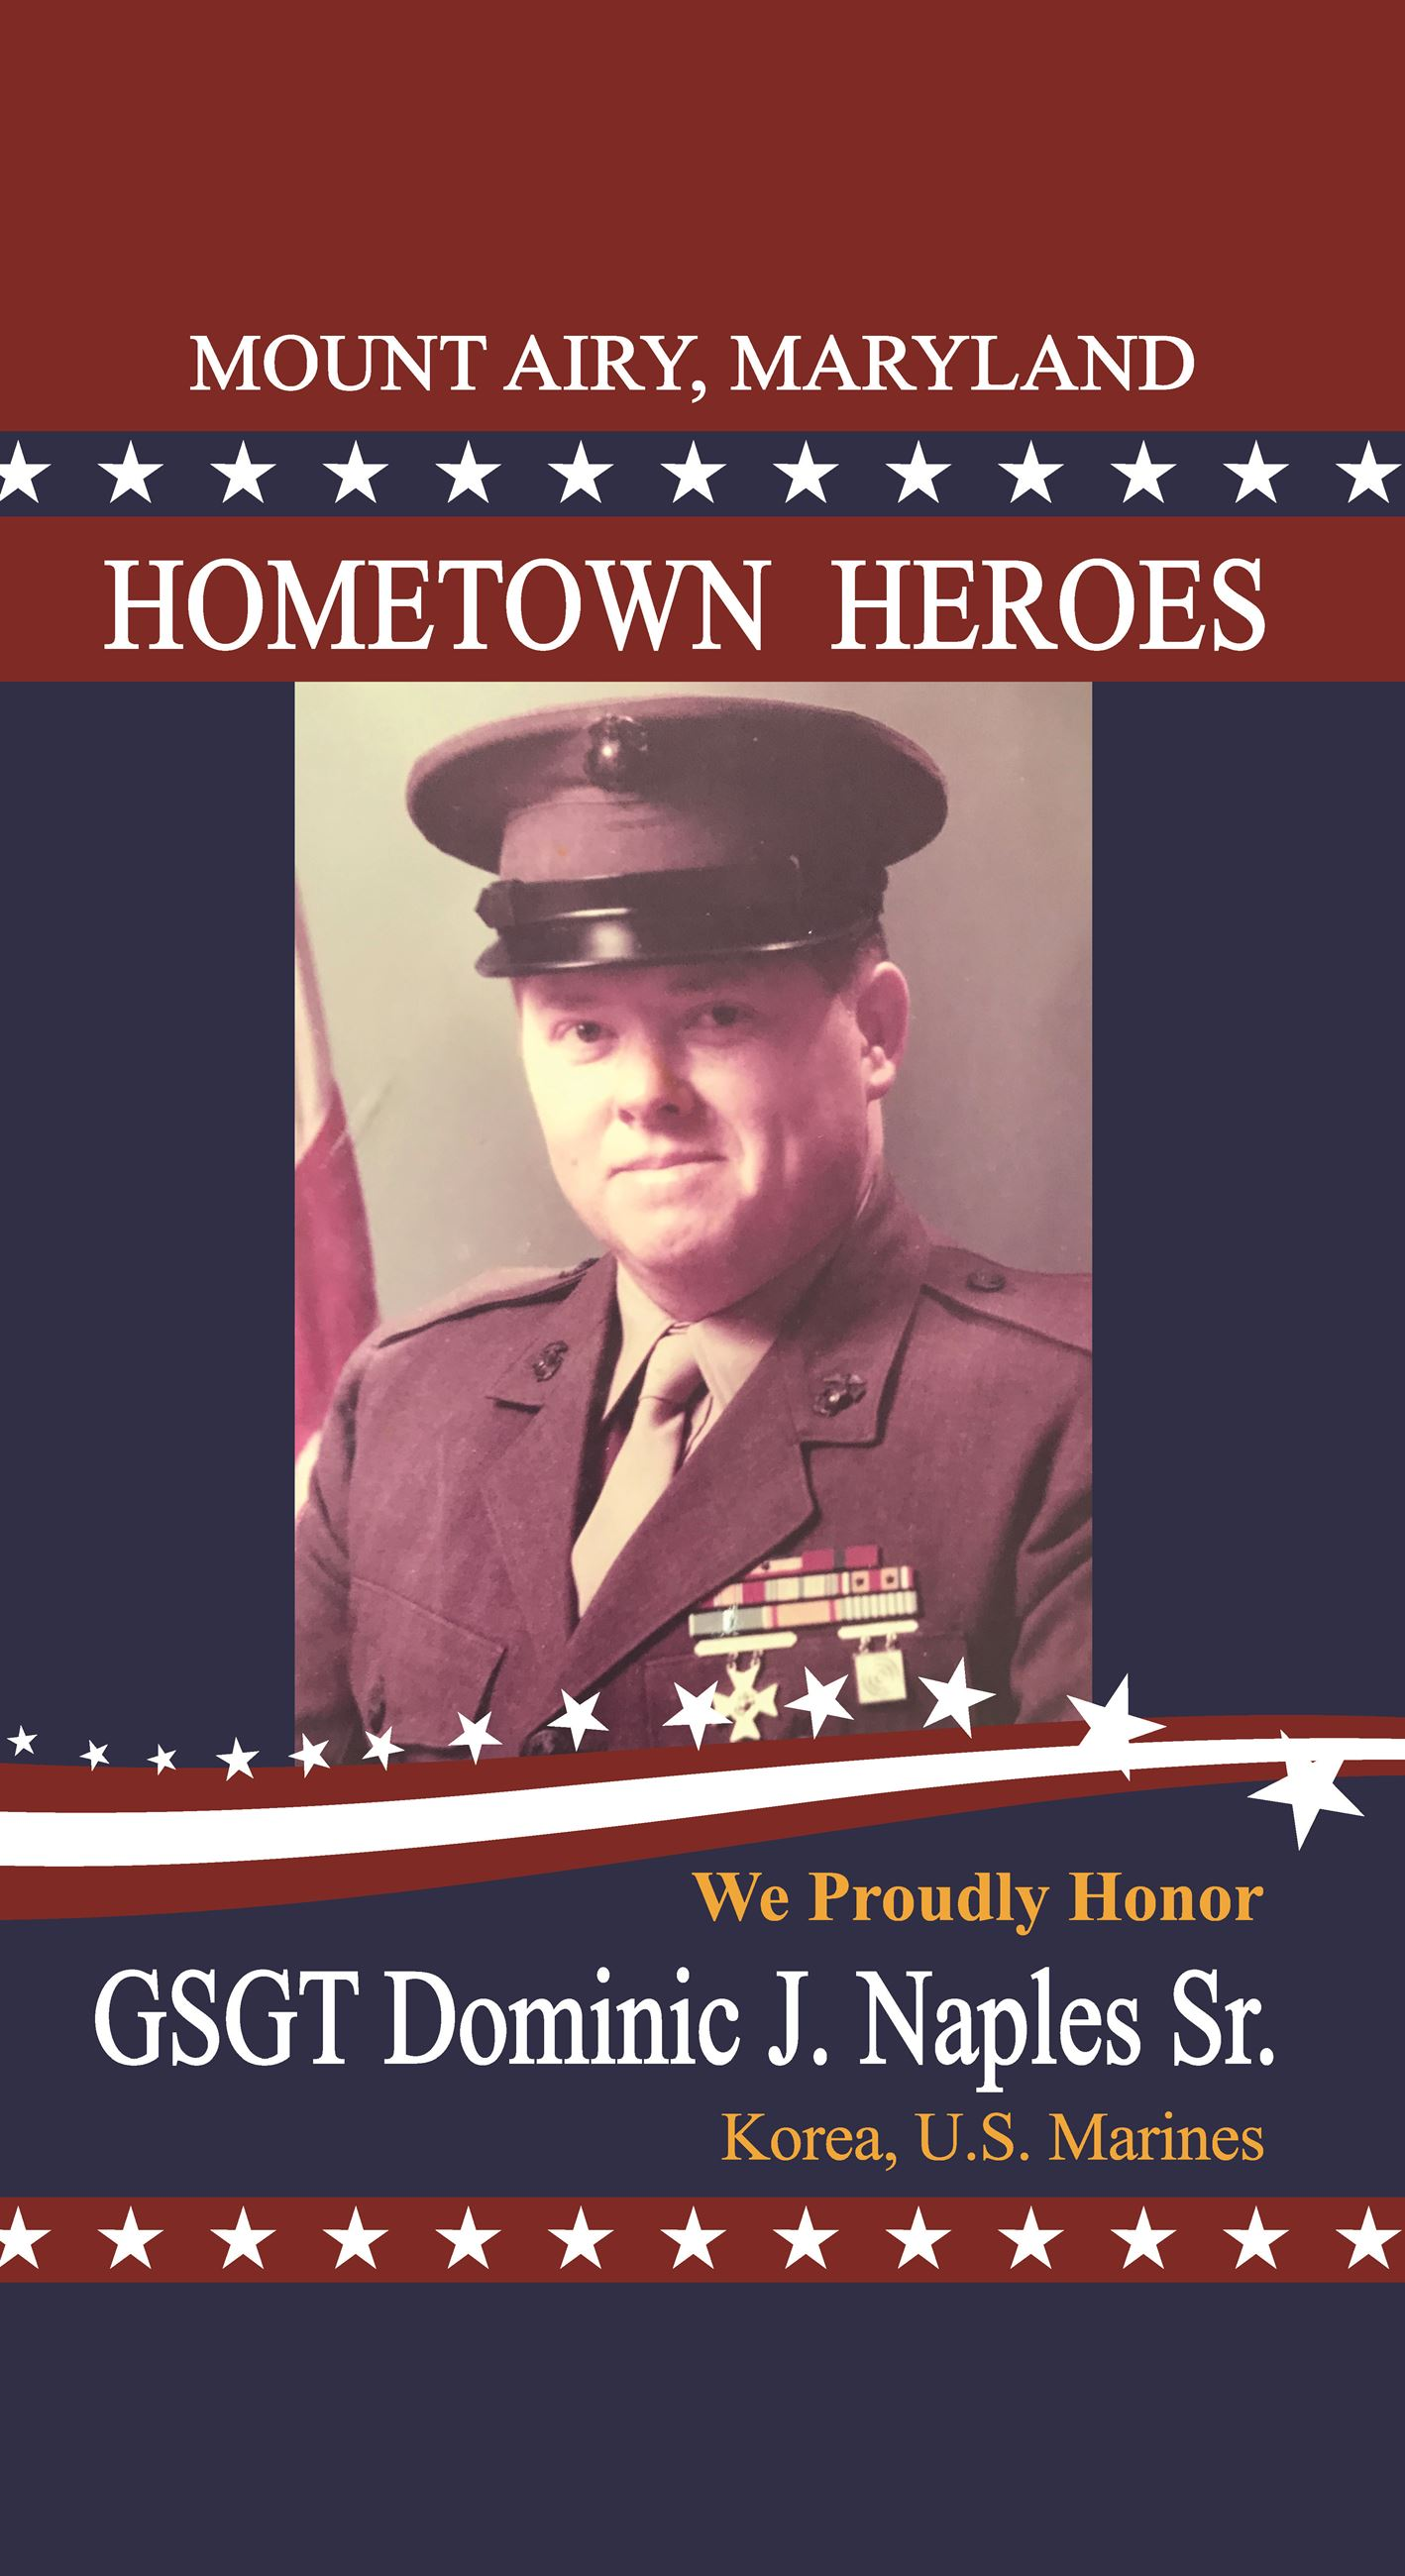 DominicJNaplesSr_MtAiryHeroes-Flag-24x44-Proof001